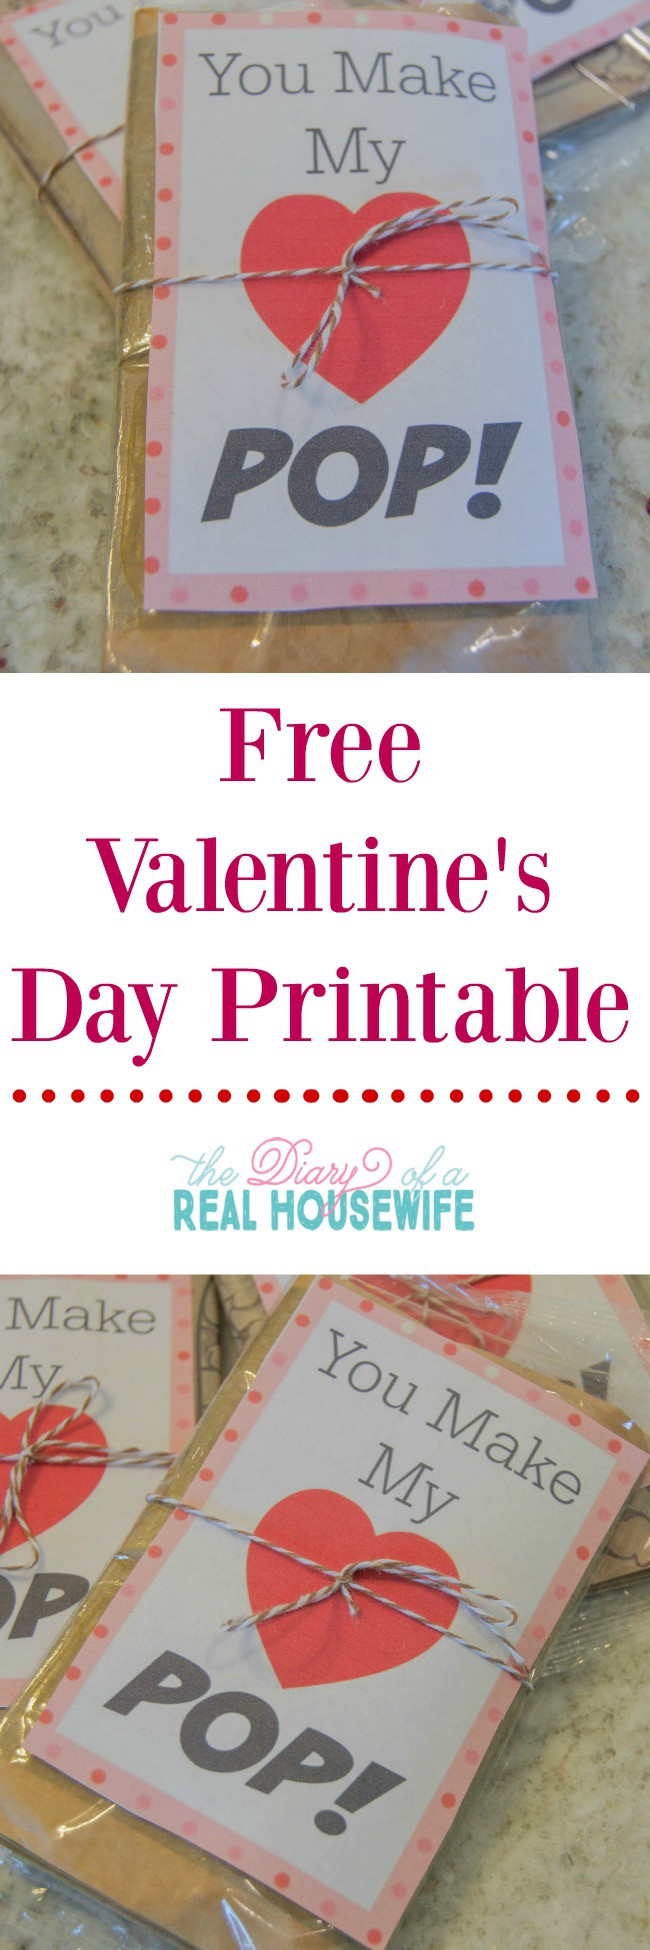 Free Valentines Day Printable The Diary Of A Real Housewife